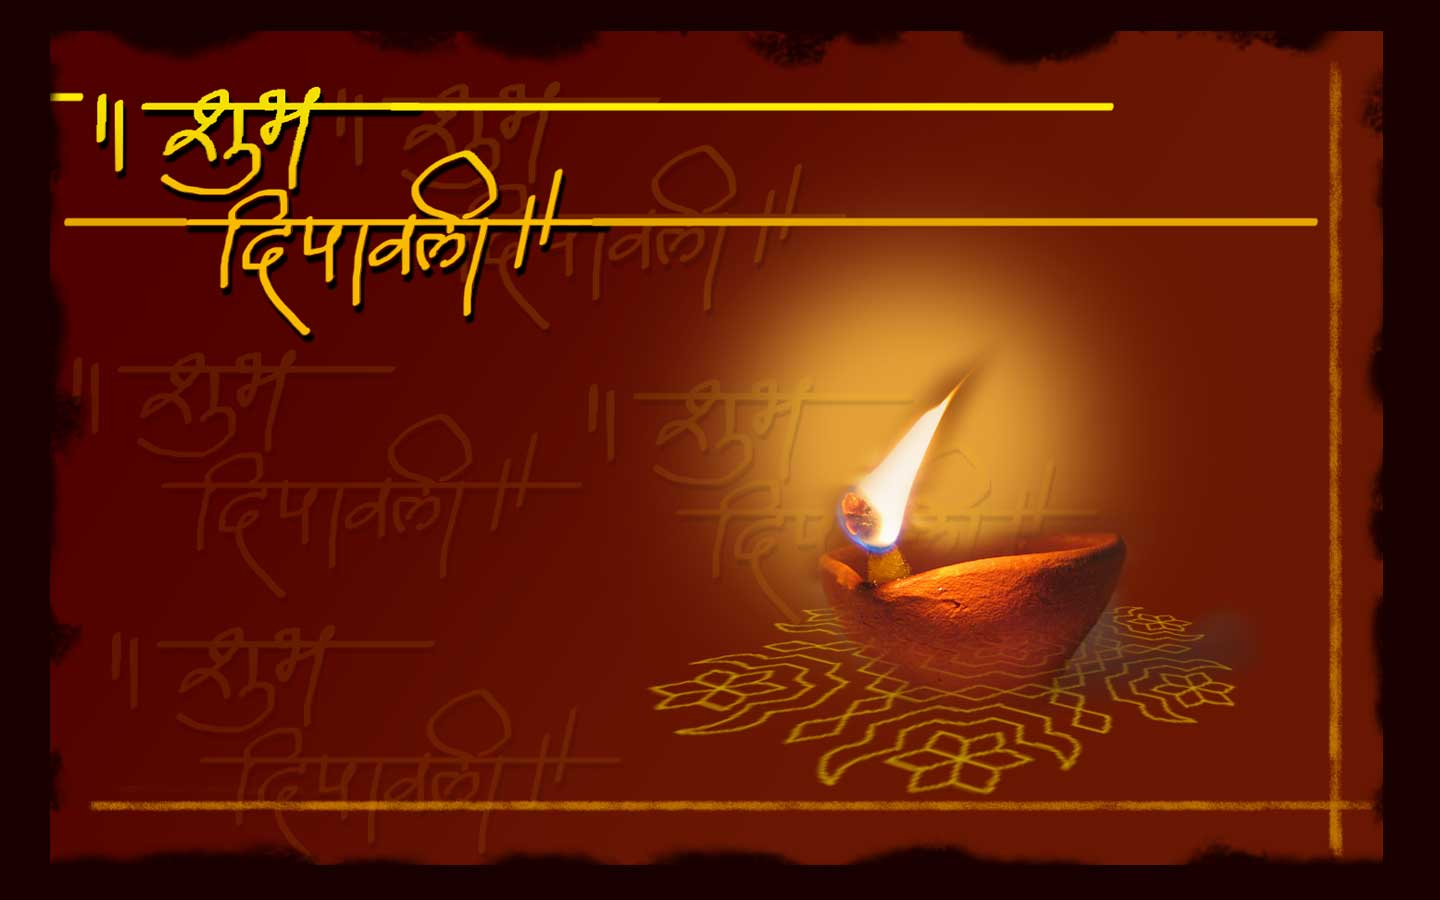 pictures deepavali greetings wallpapers - photo #9